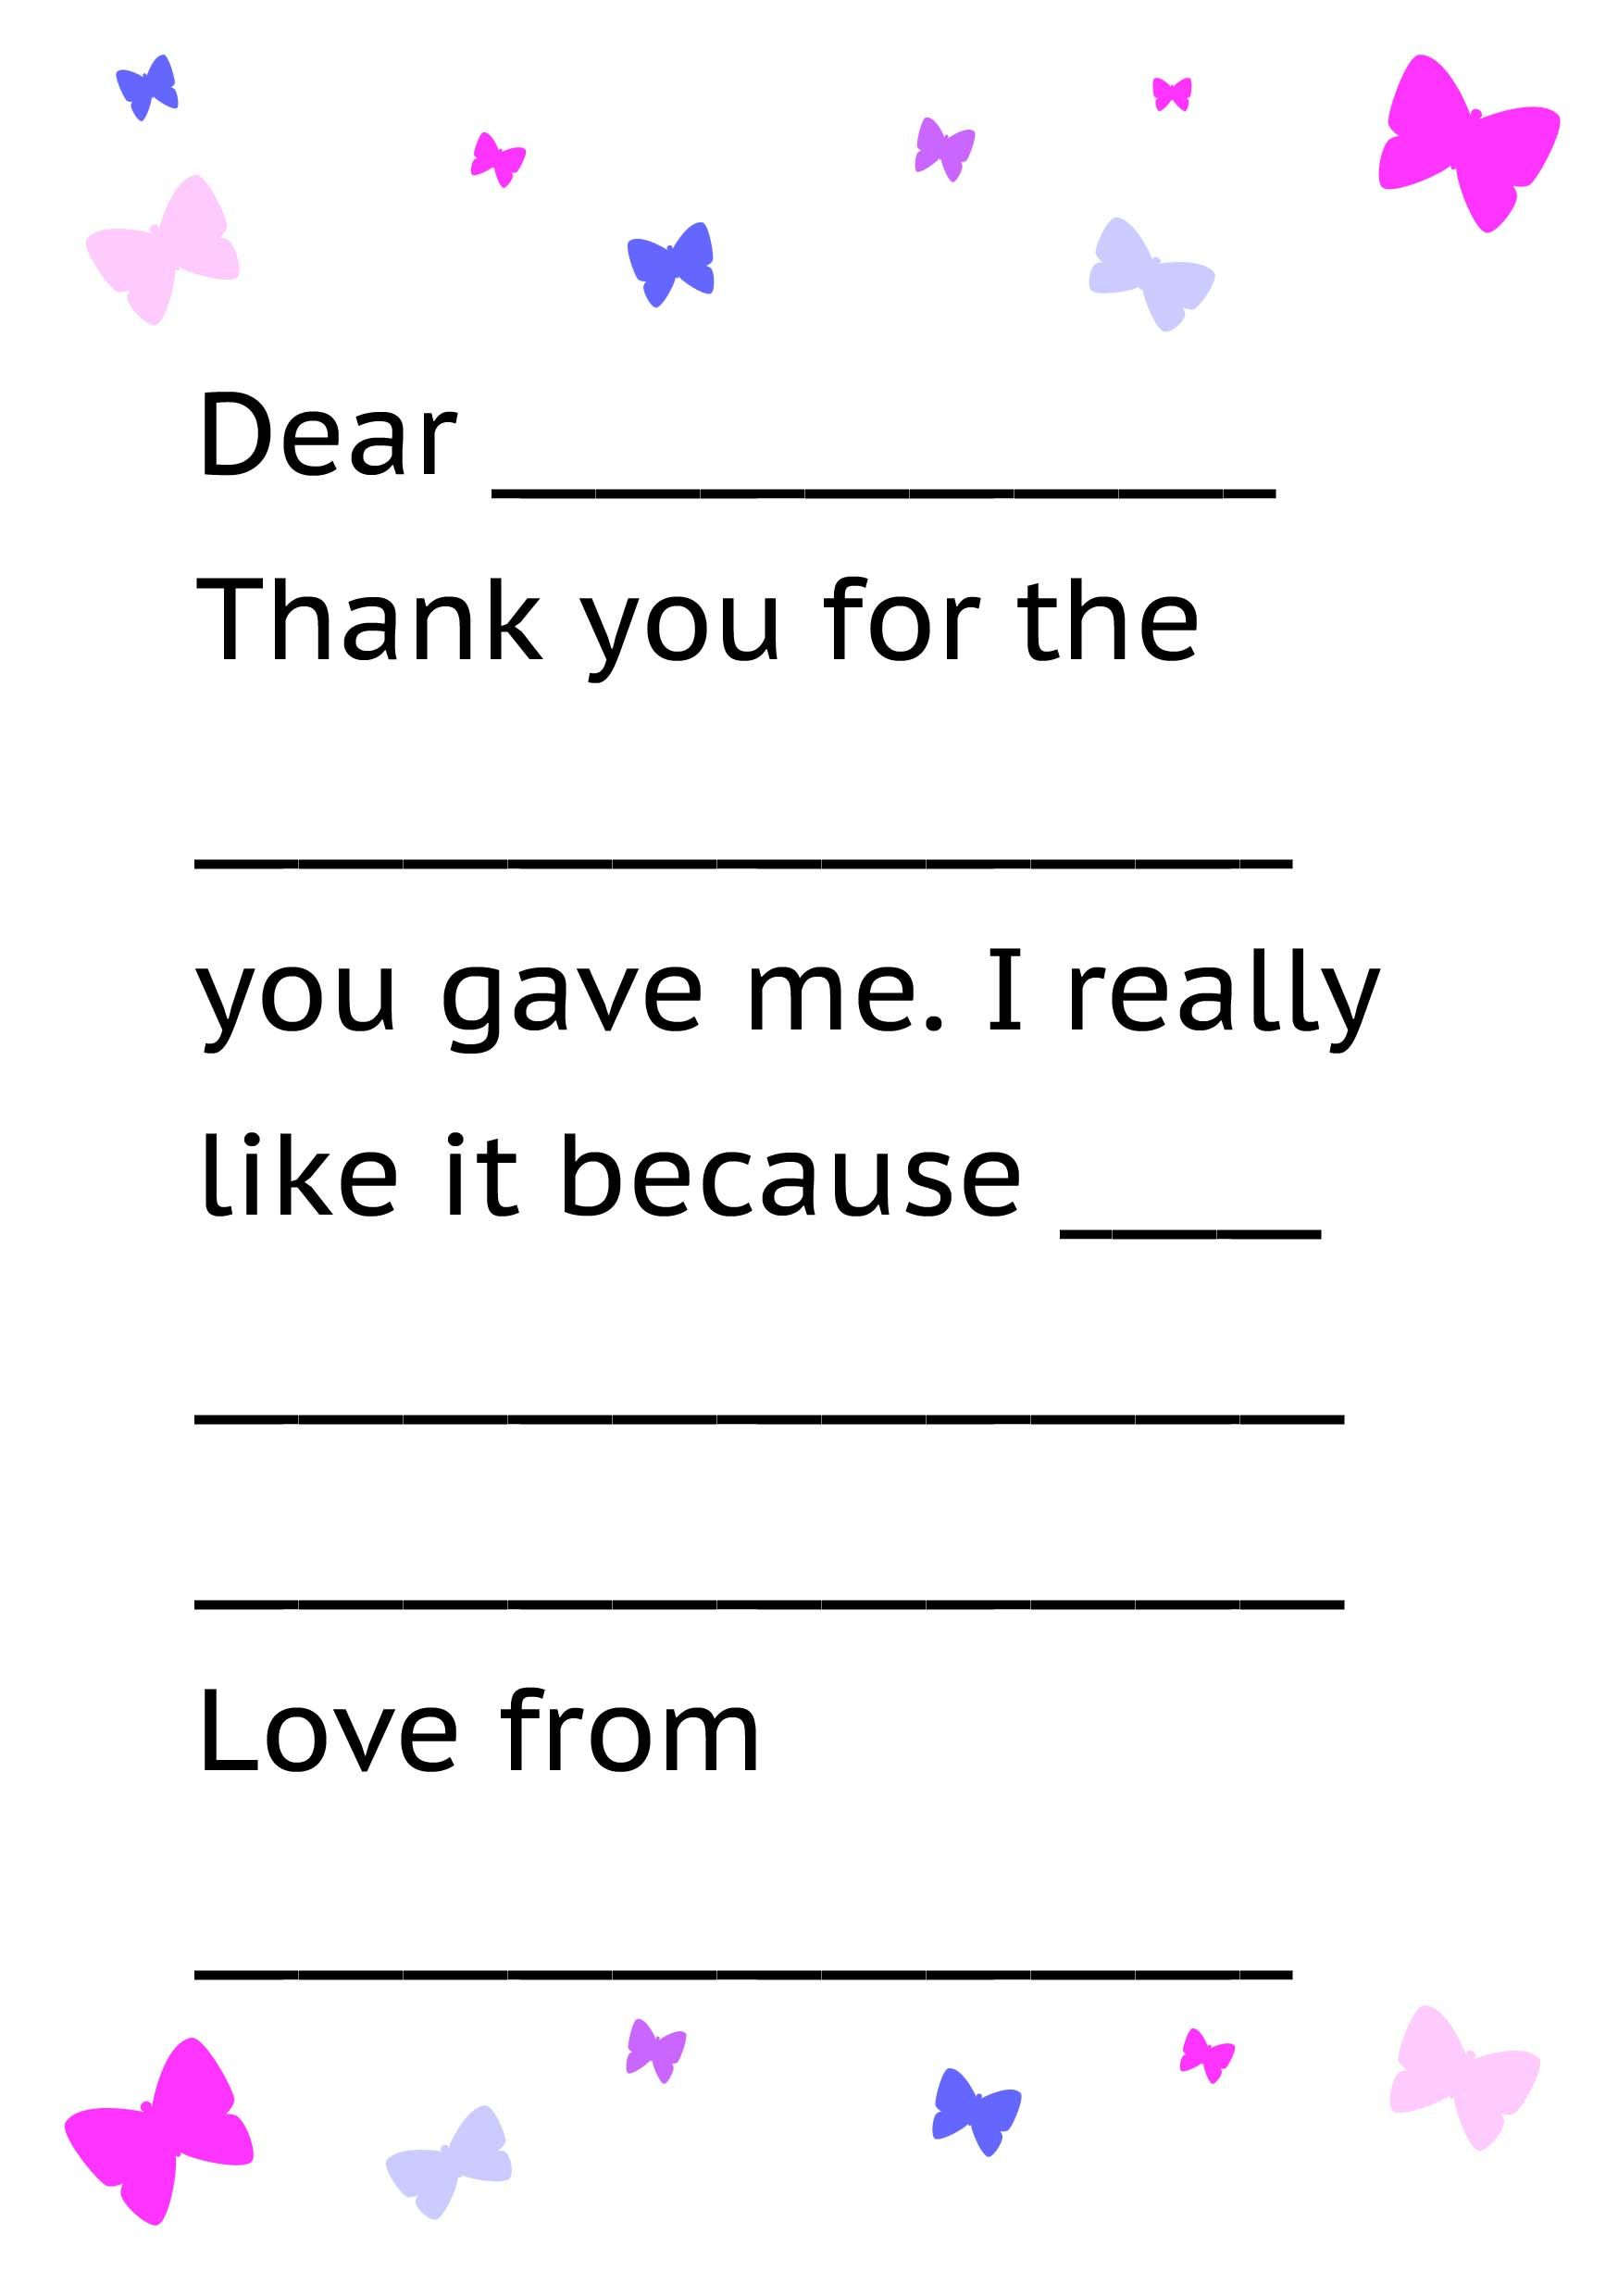 formal letter sample thank you note for kids free printable letter template design letter writing template